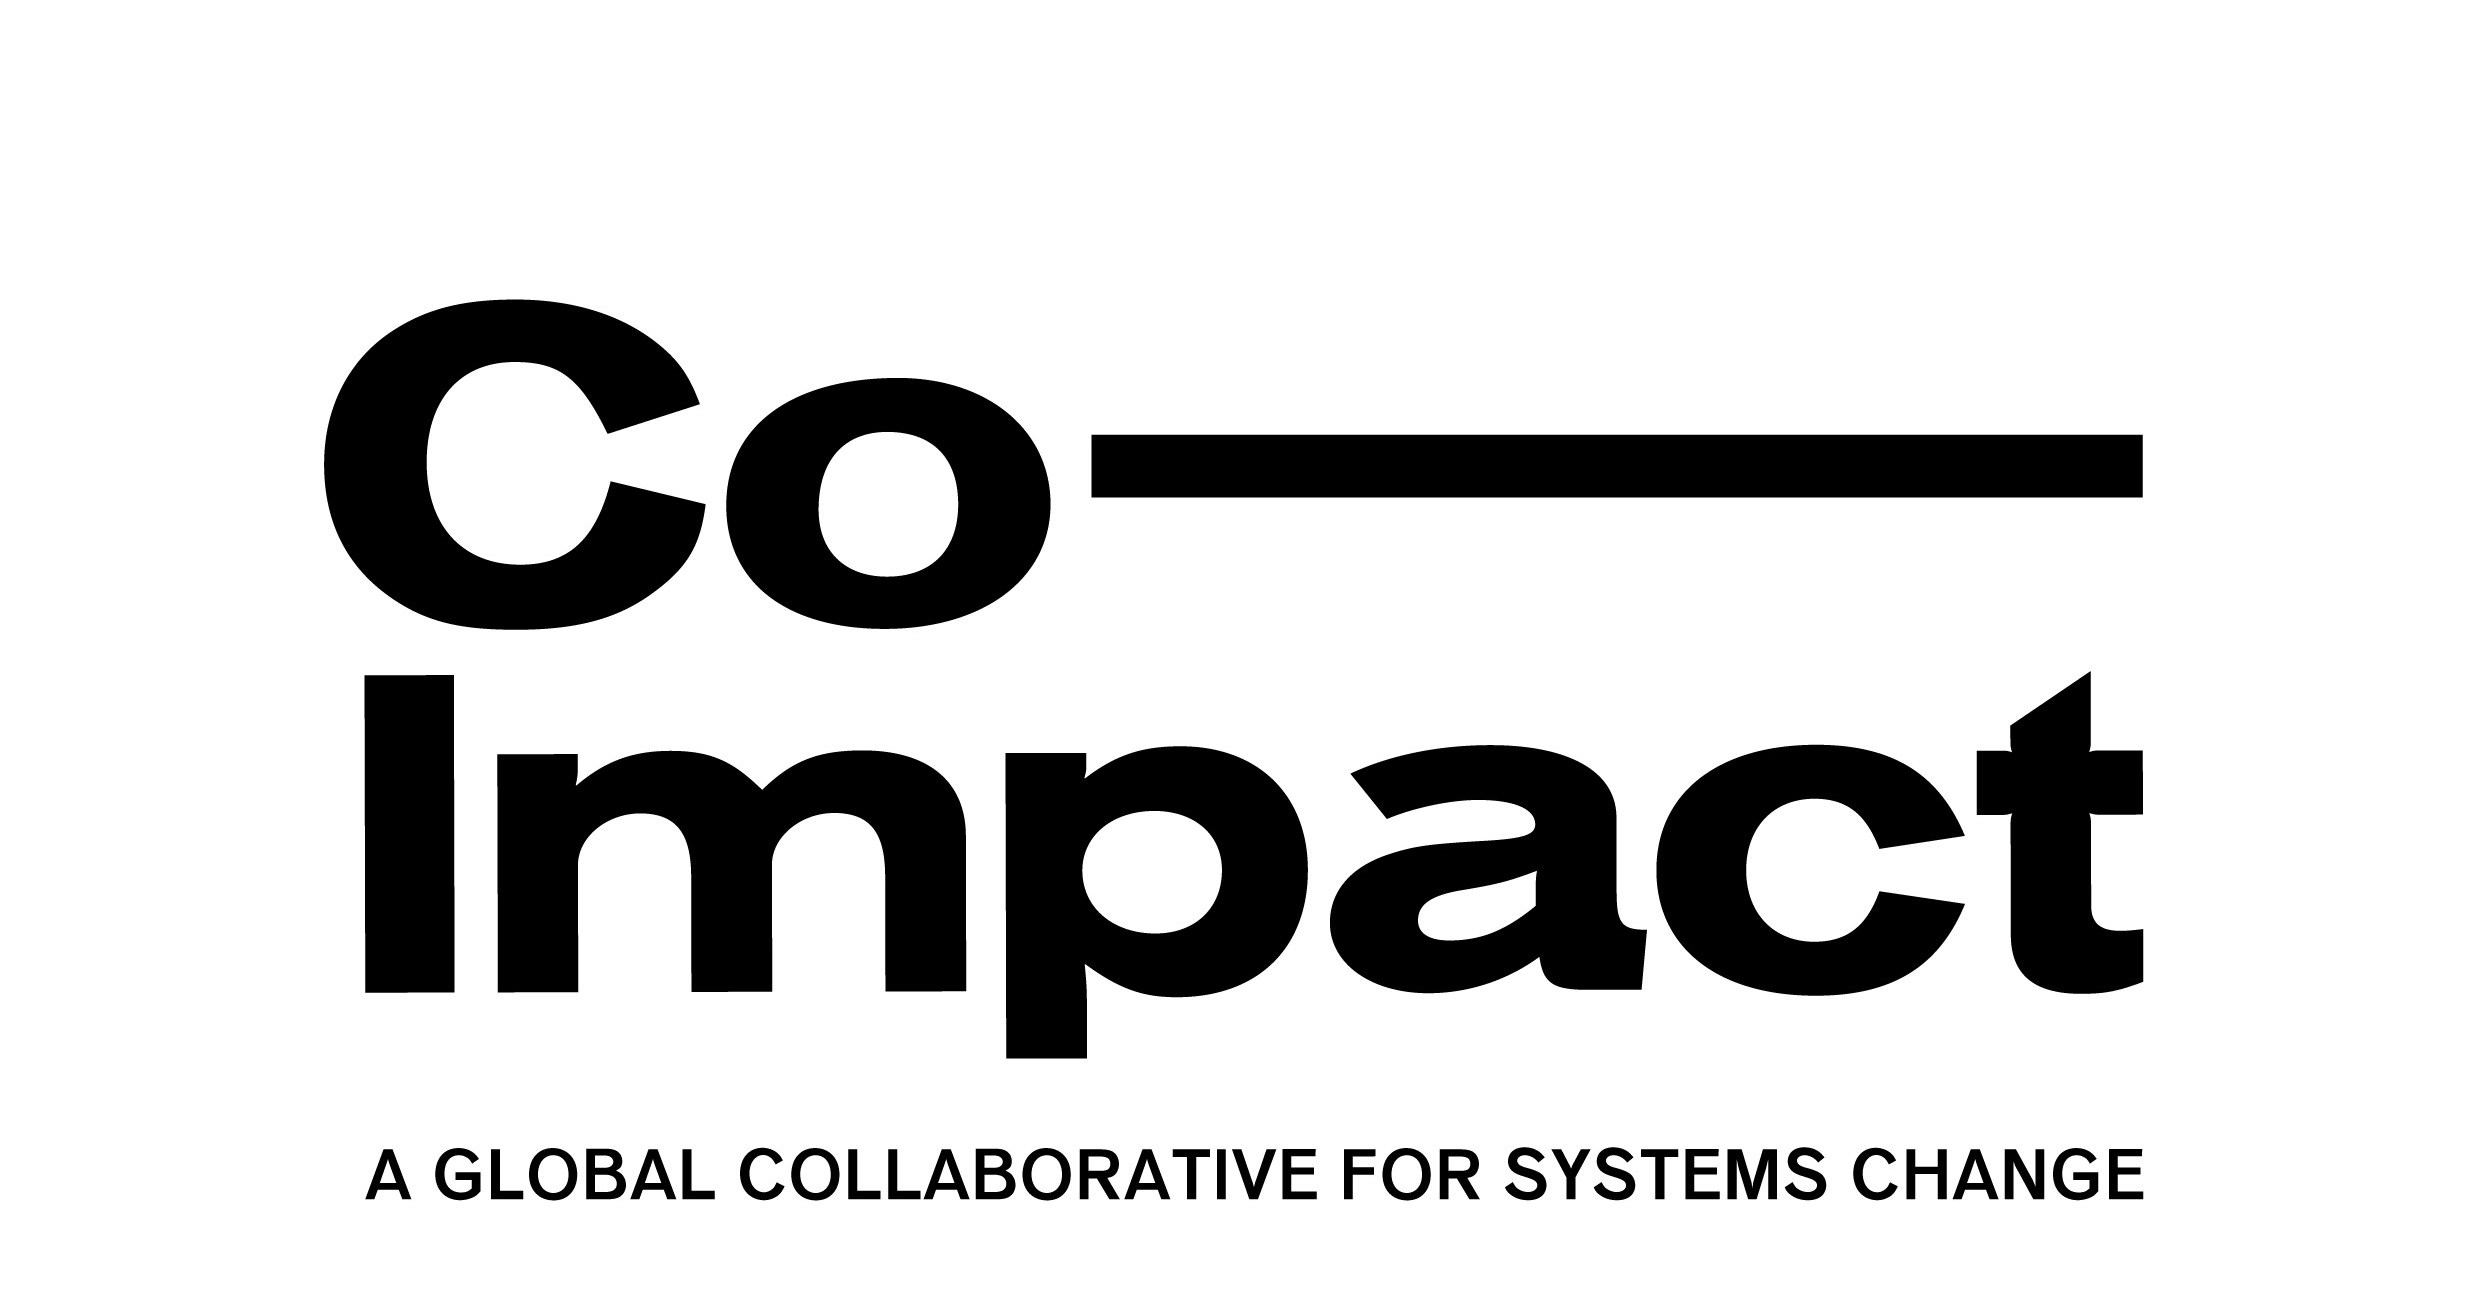 Leading Philanthropists Announce Co-Impact, A Global